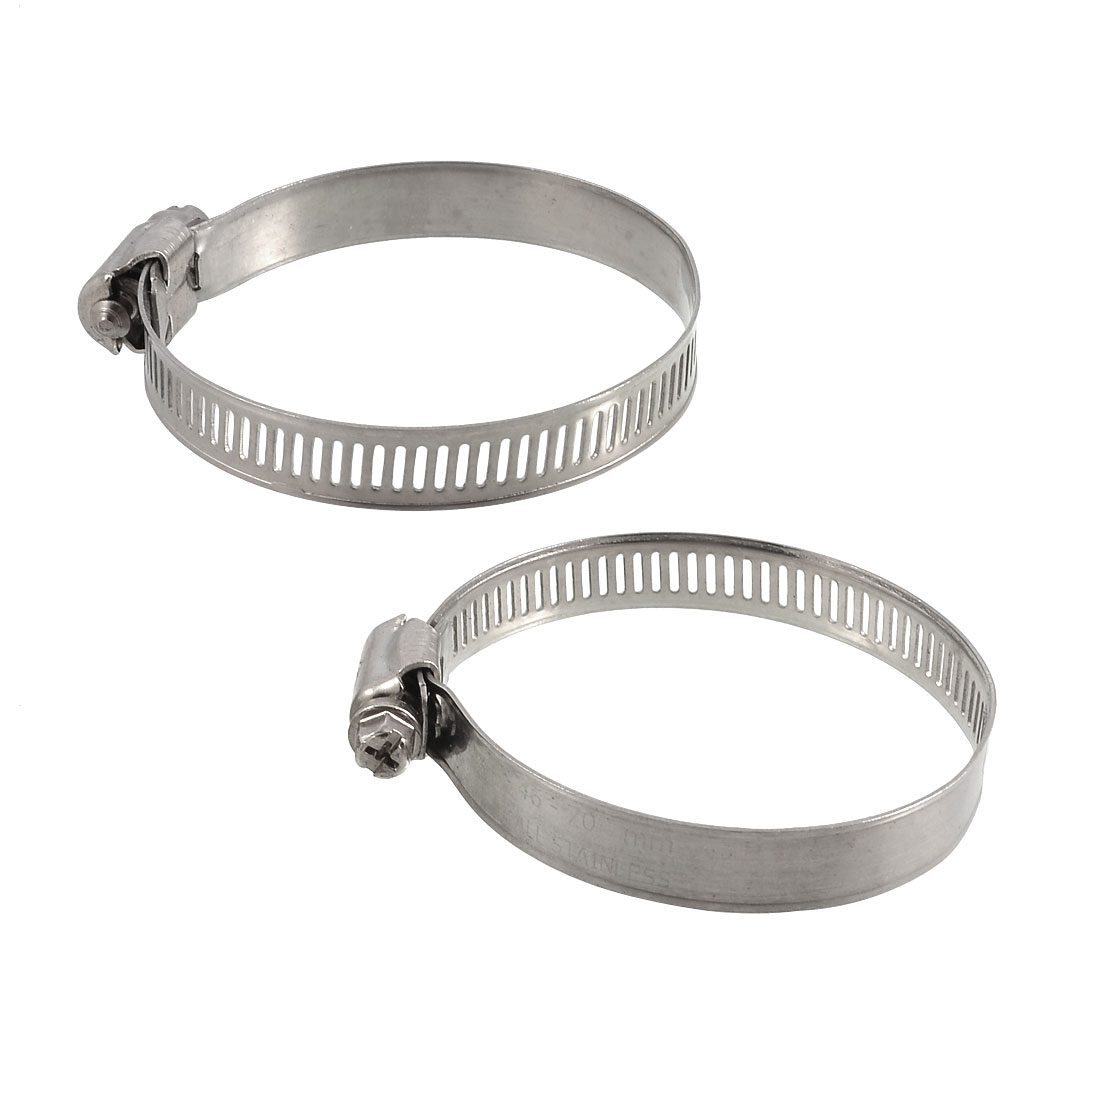 2 Pcs 46mm-70mm Adjustable Stainless Steel Worm Drive Hose Clamps